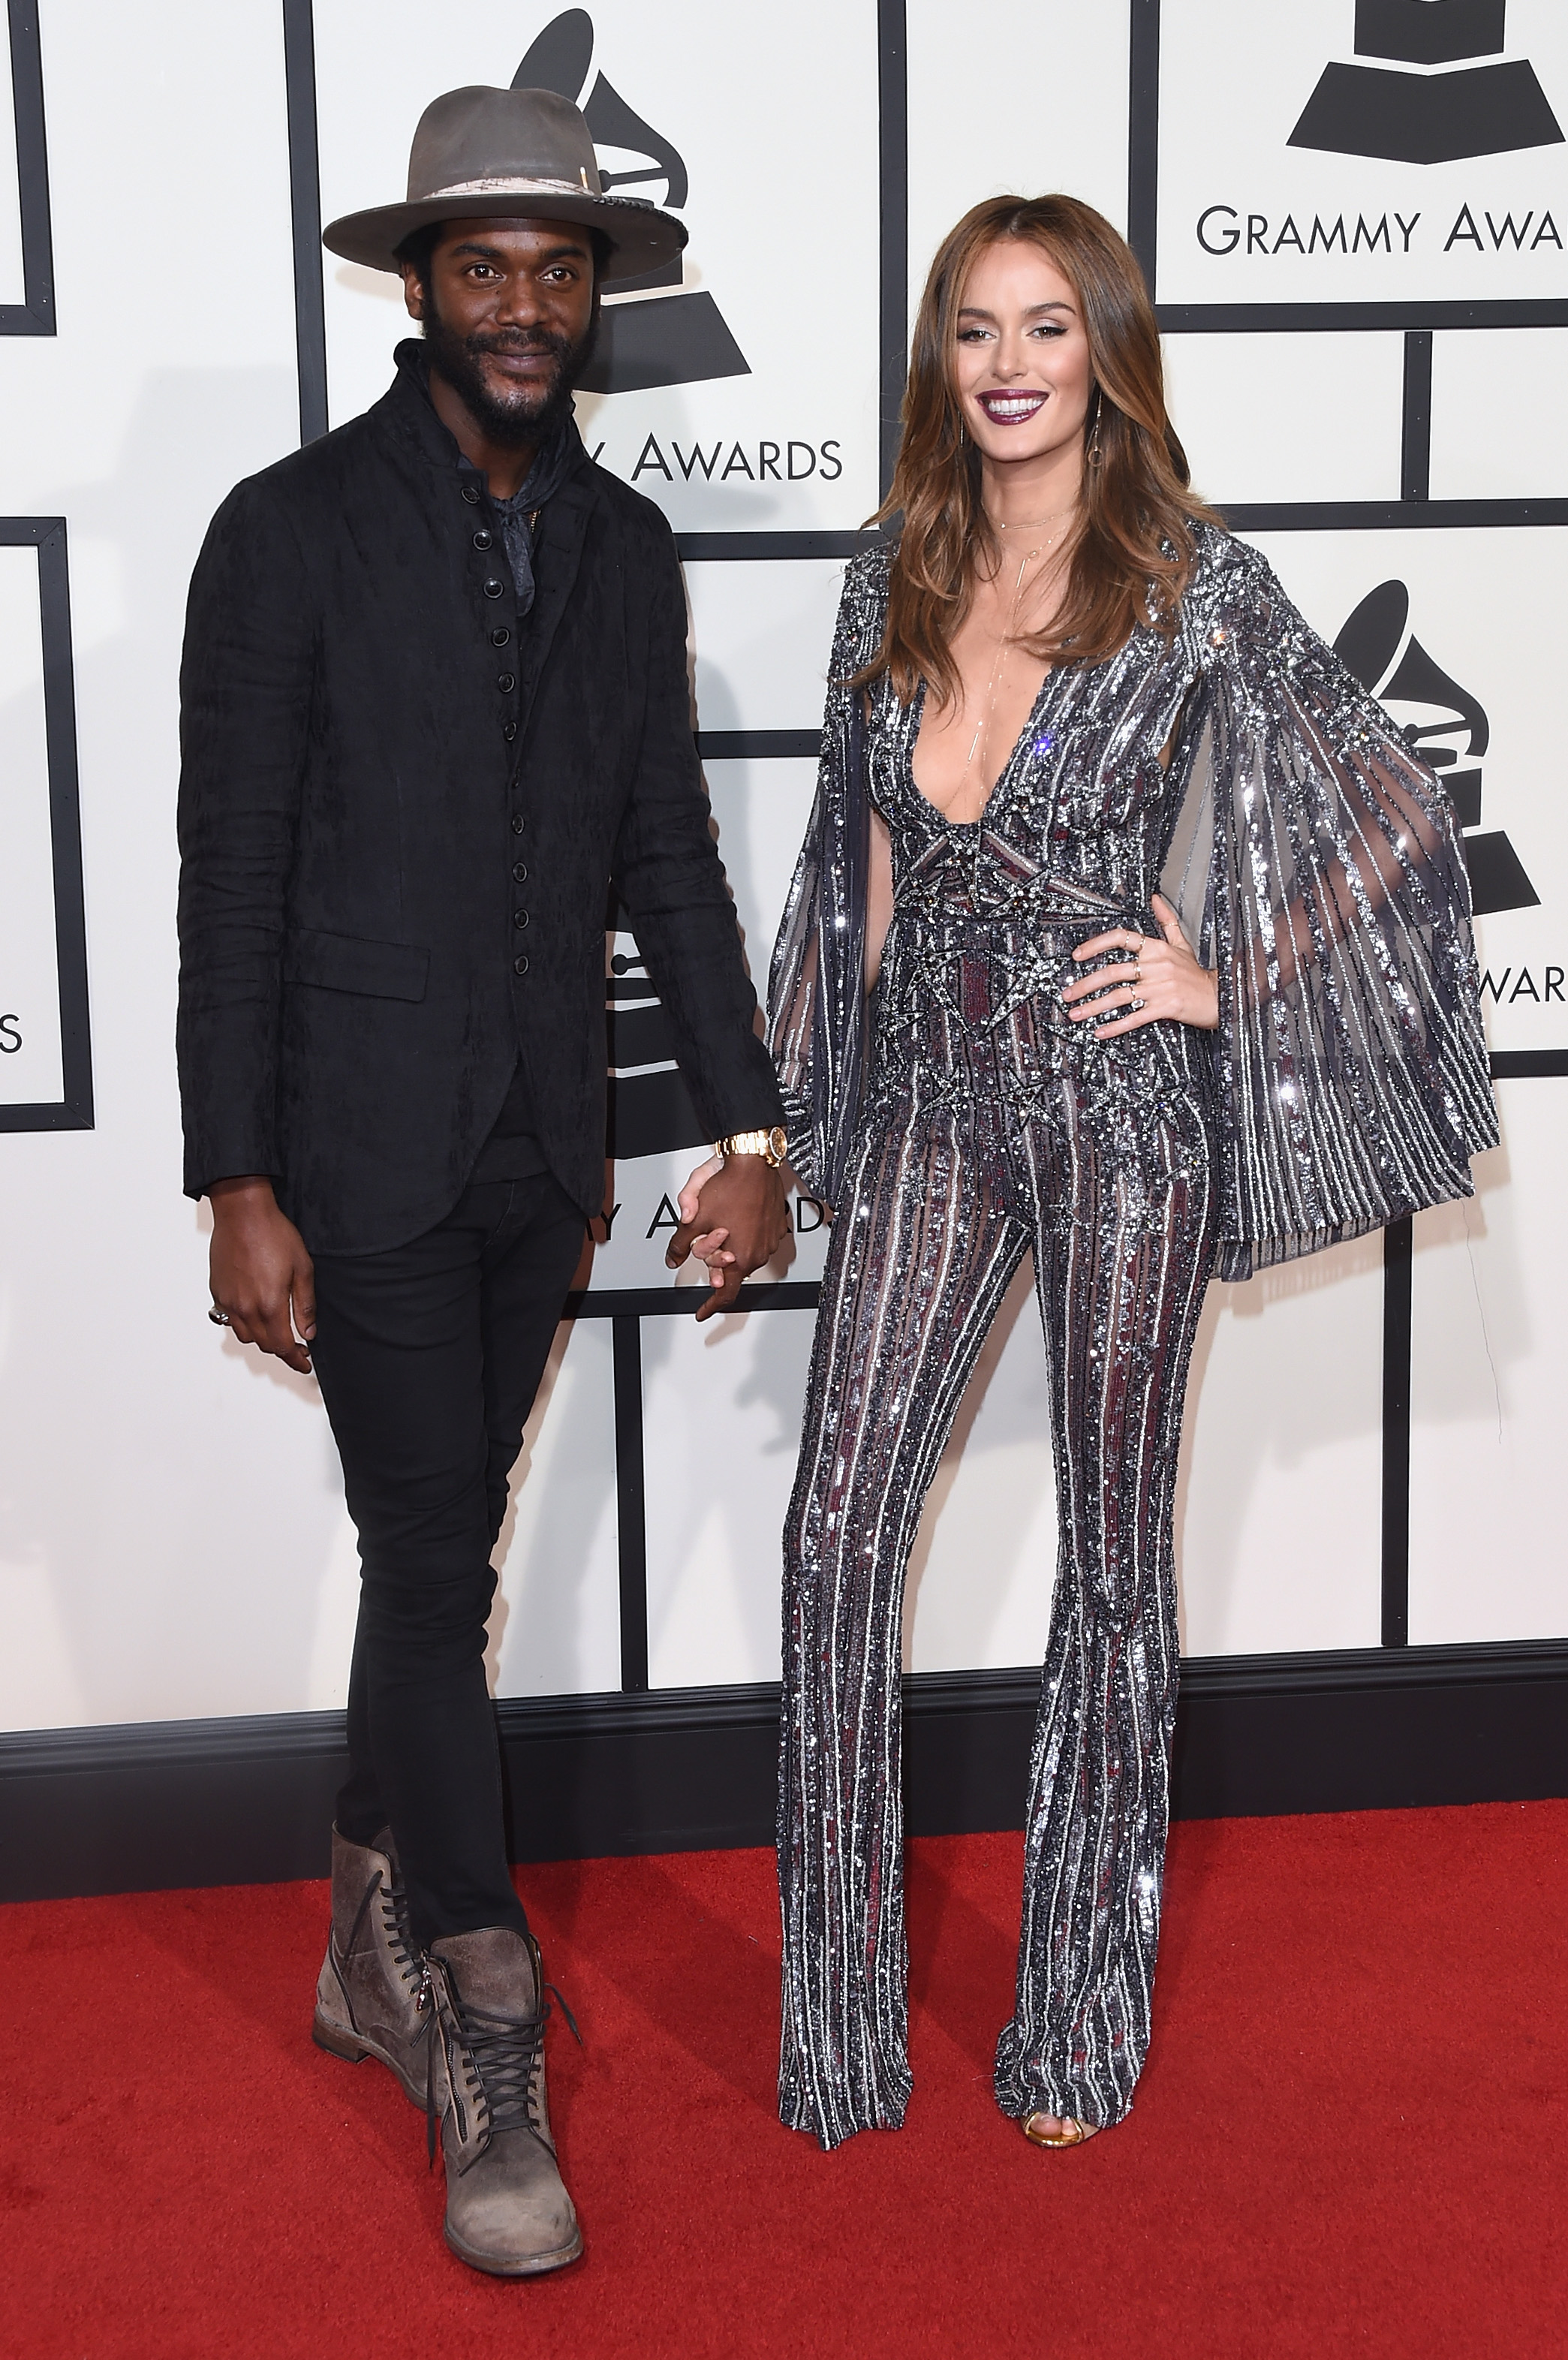 Gary Clark Jr., left, and Nicole Trunfio, right, attend the 58th GRAMMY Awards at Staples Center on Feb. 15, 2016 in Los Angeles.